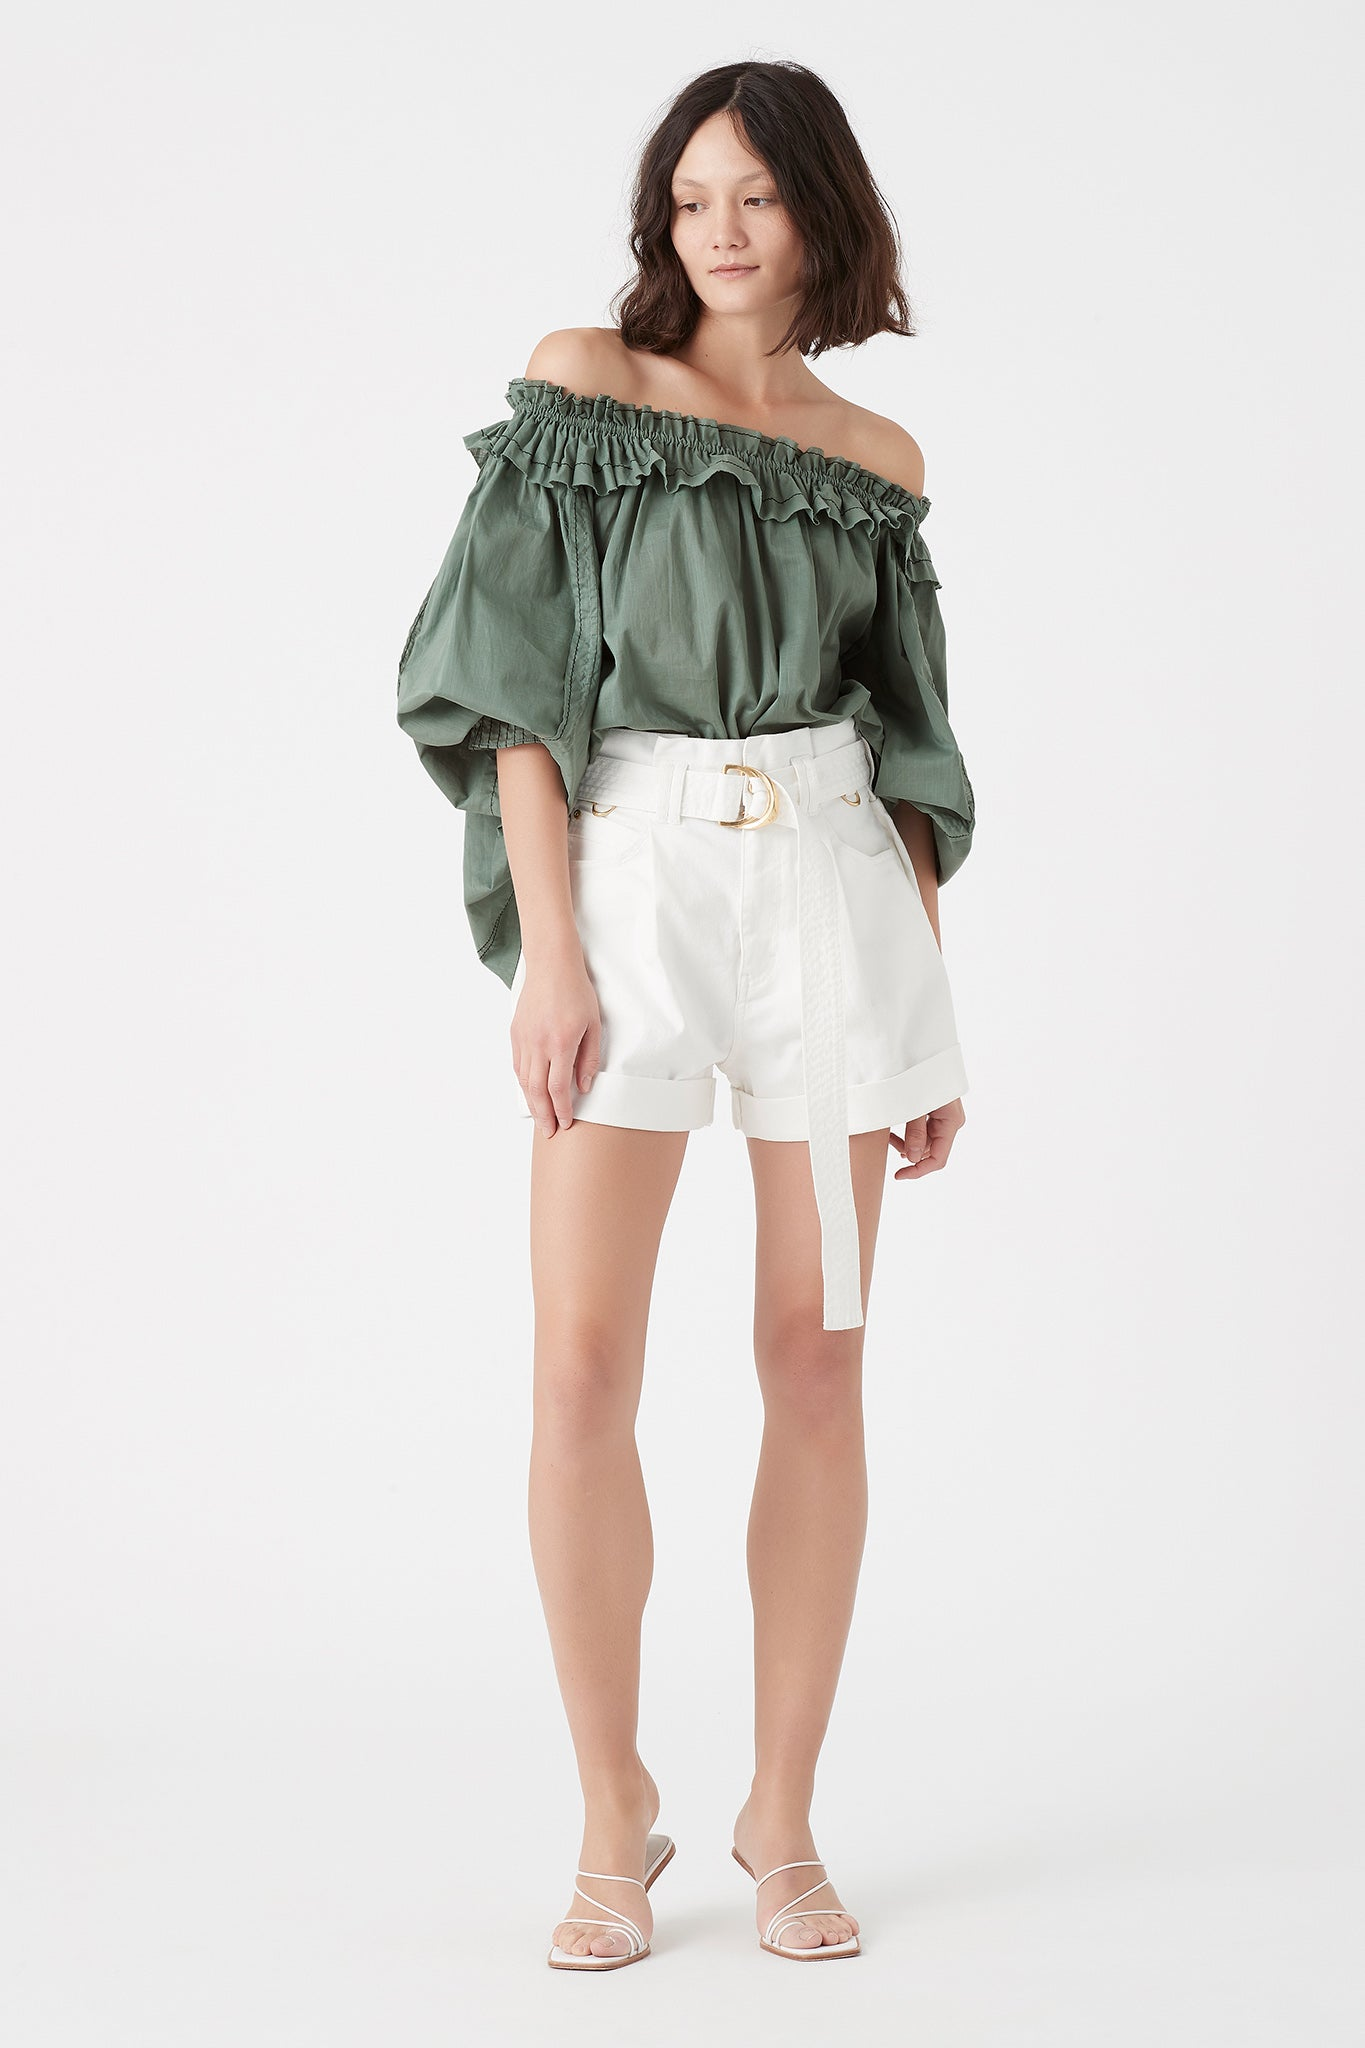 Mimosa Ruffle Blouse Outfit View